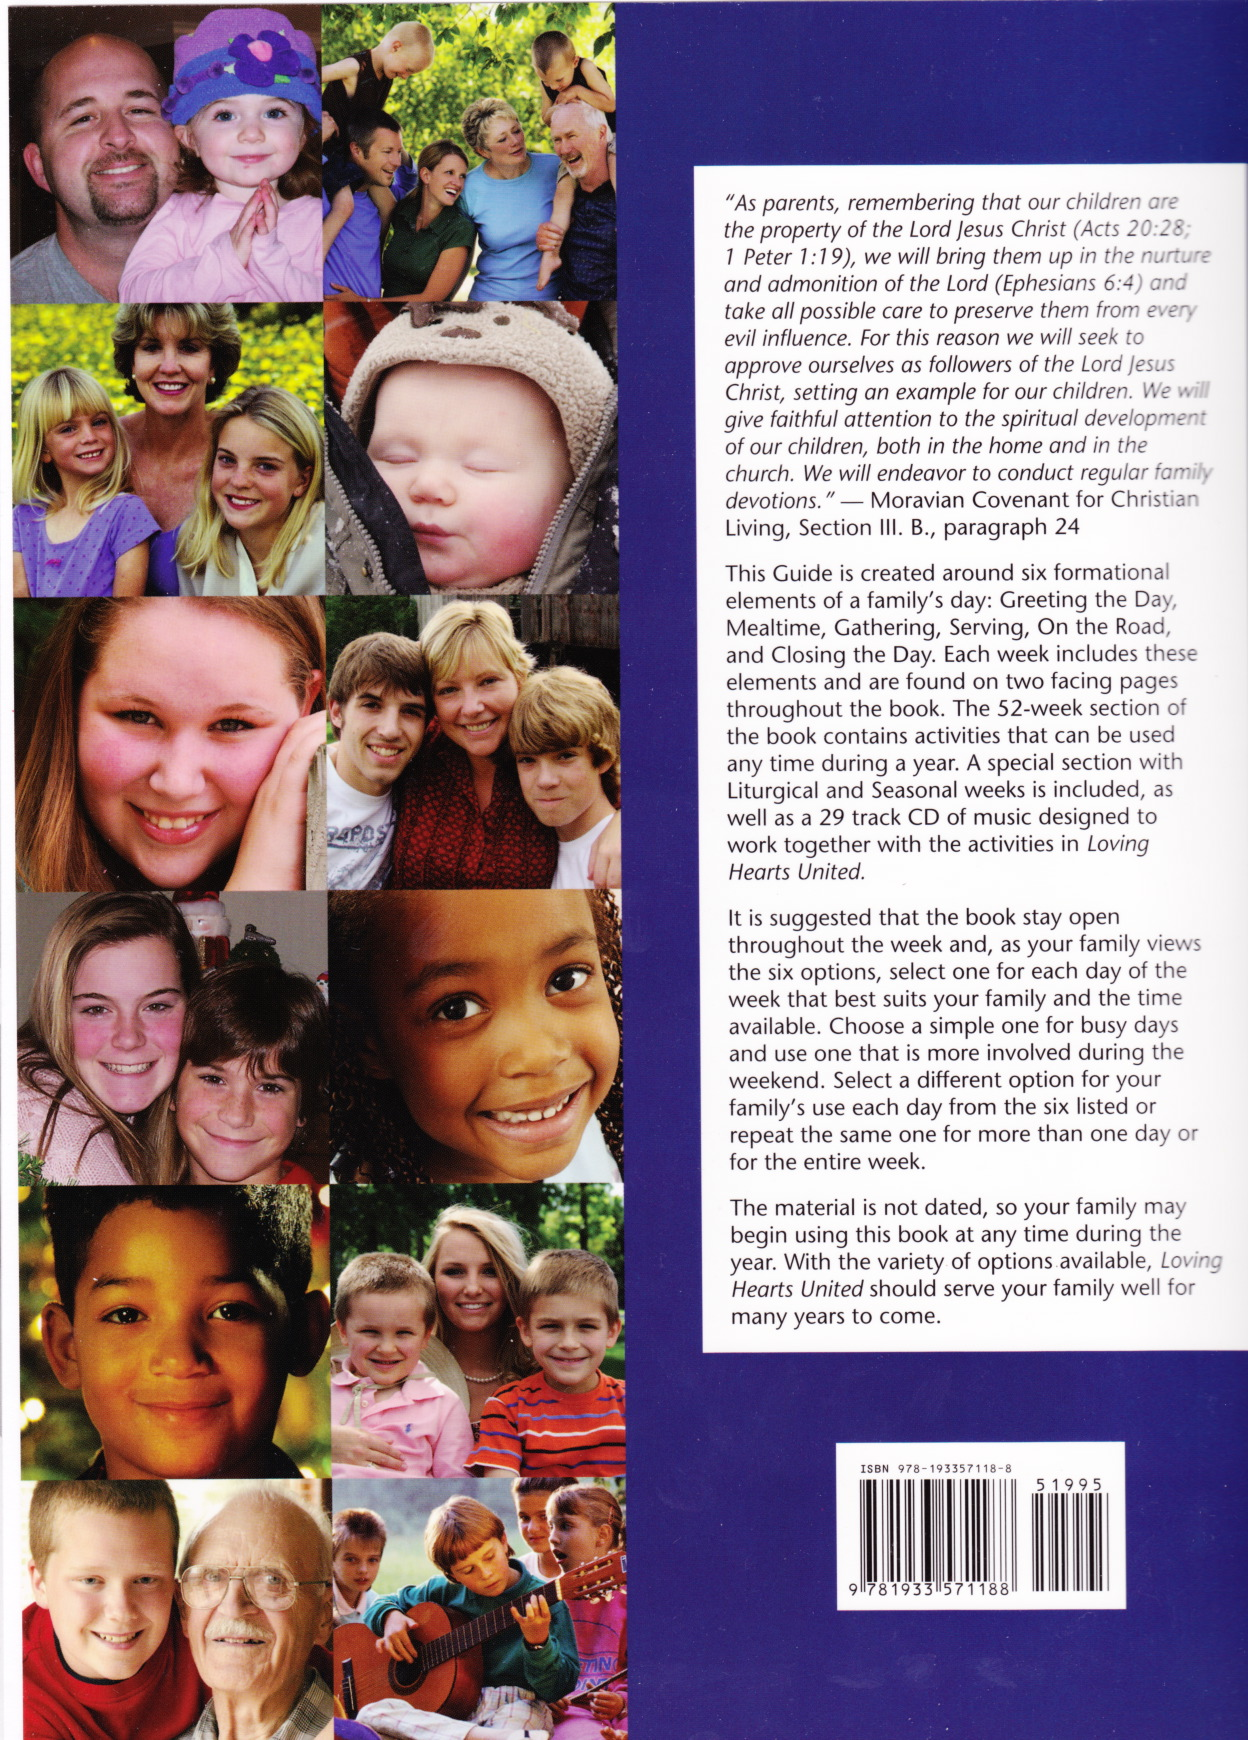 Loving Hearts United – A Moravian Guide for Family Living